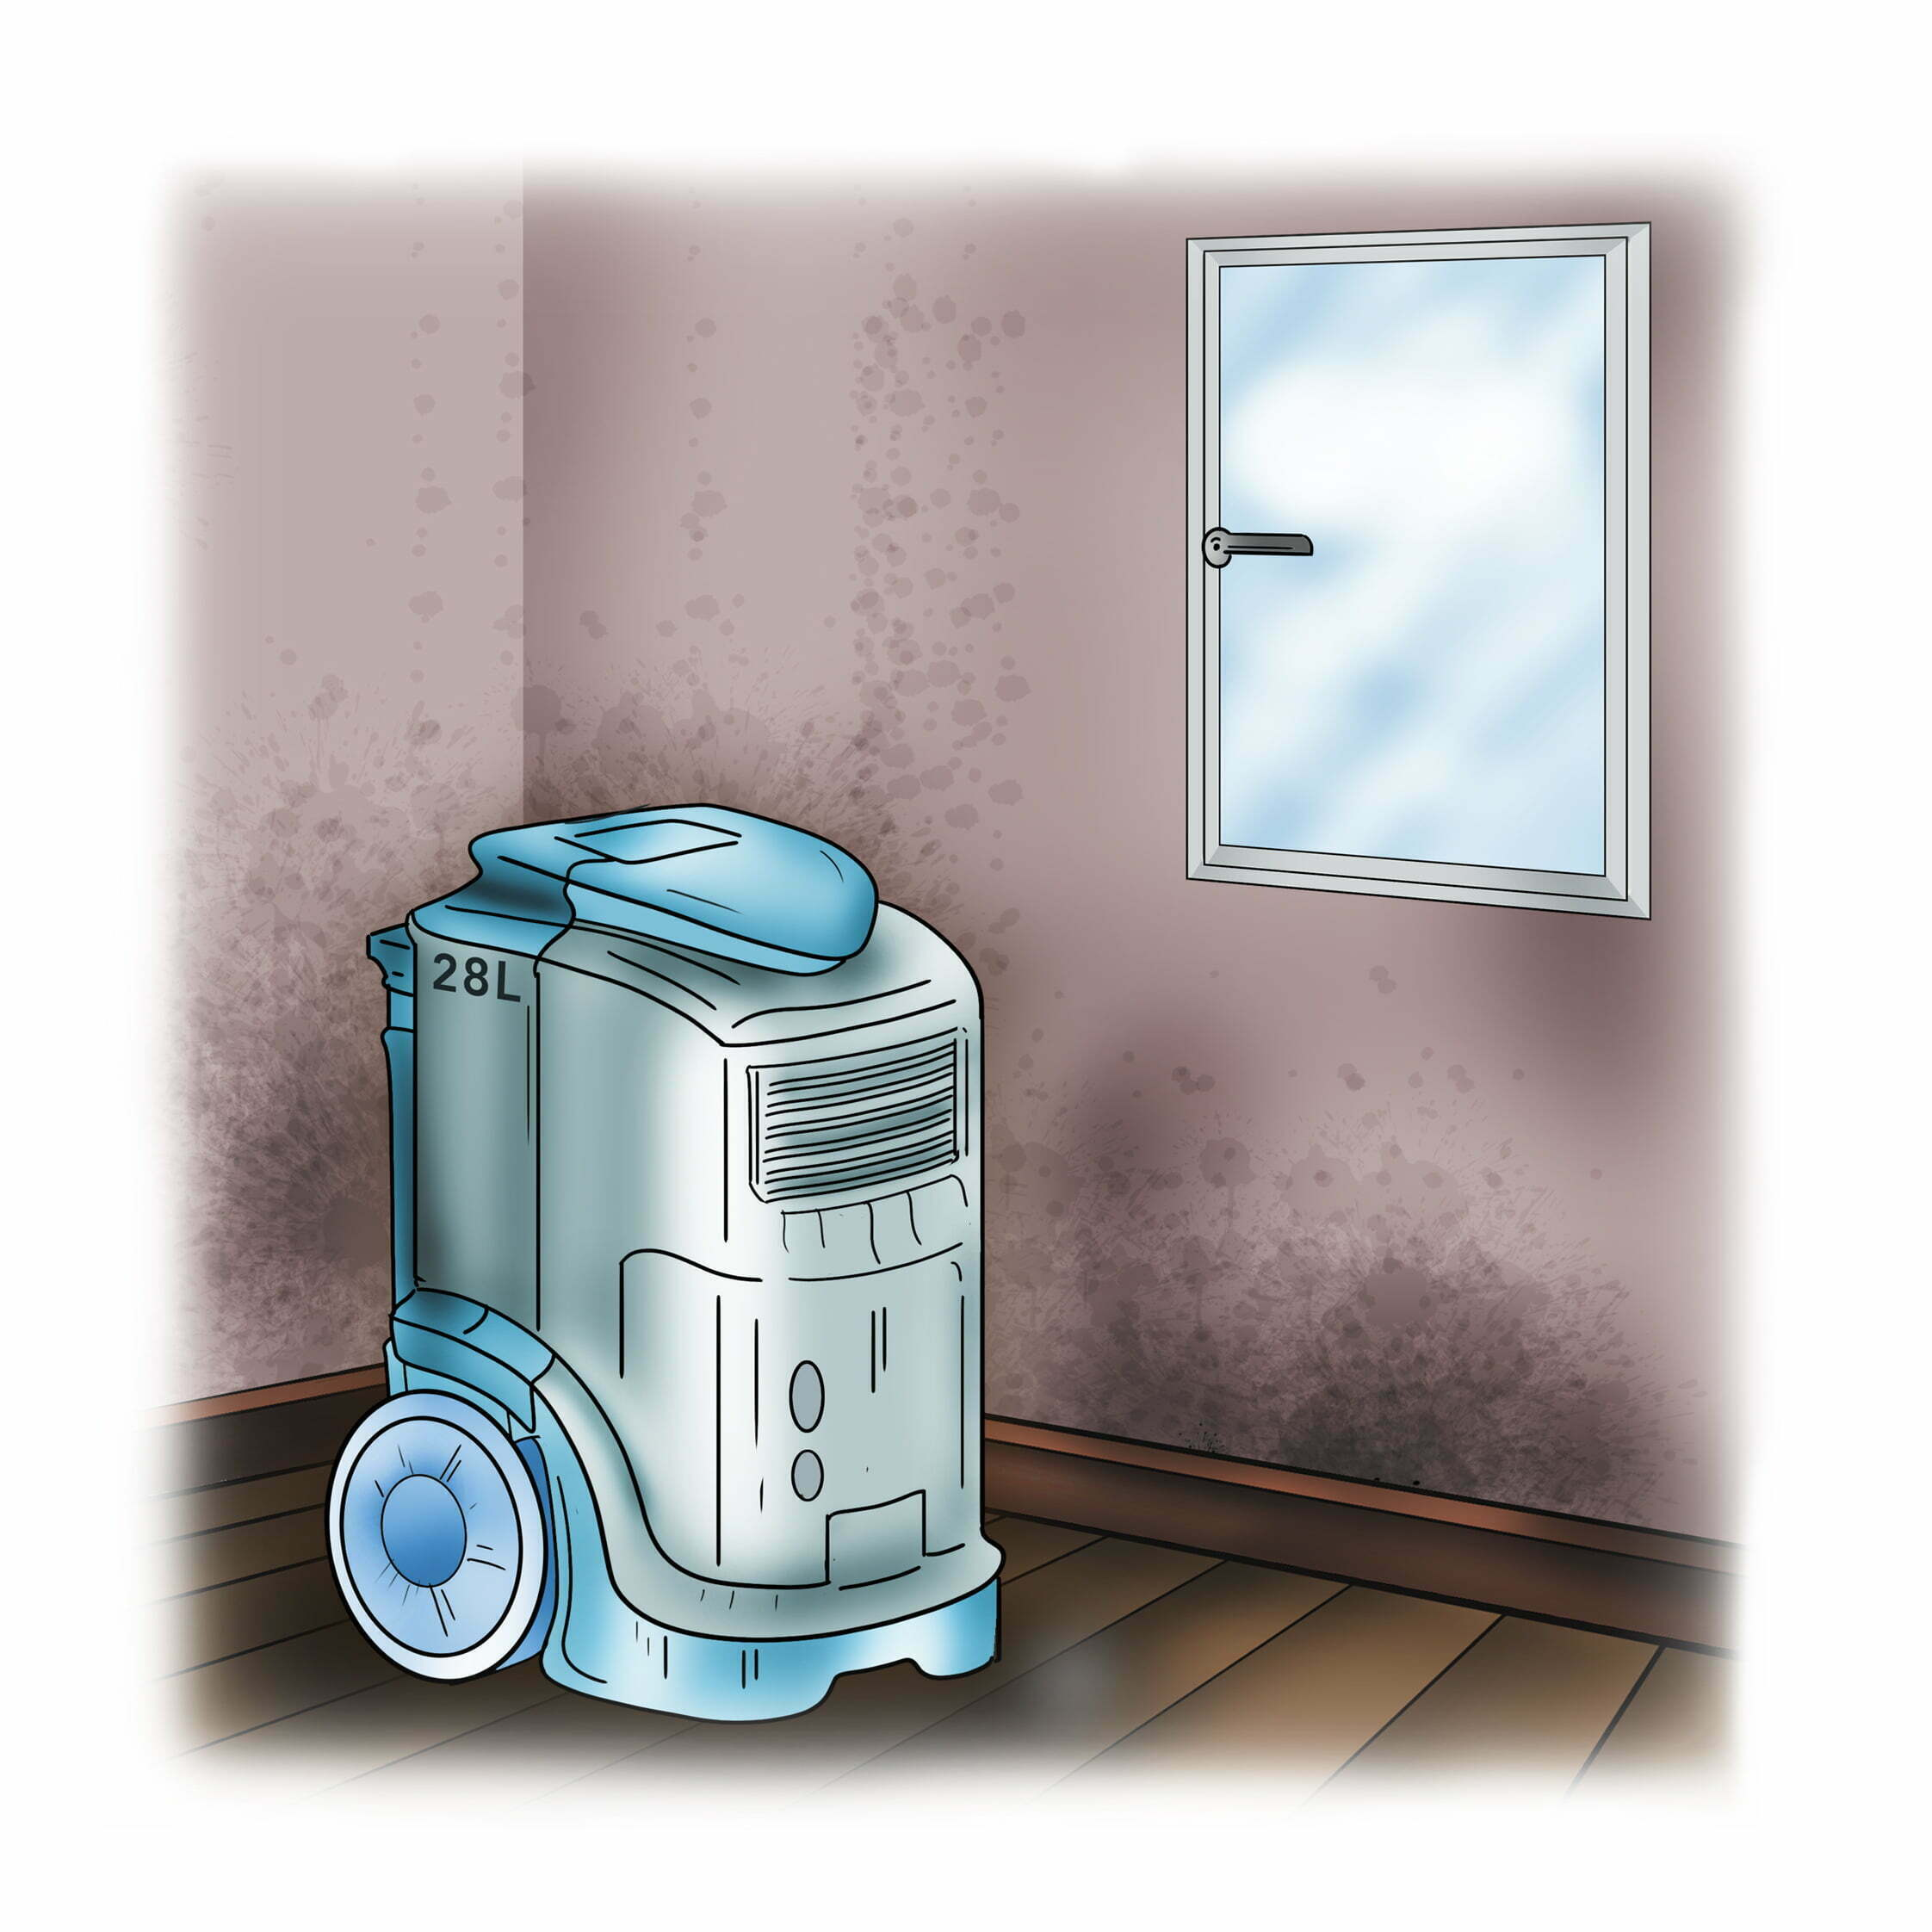 Buy a dehumidifier for large damp patches